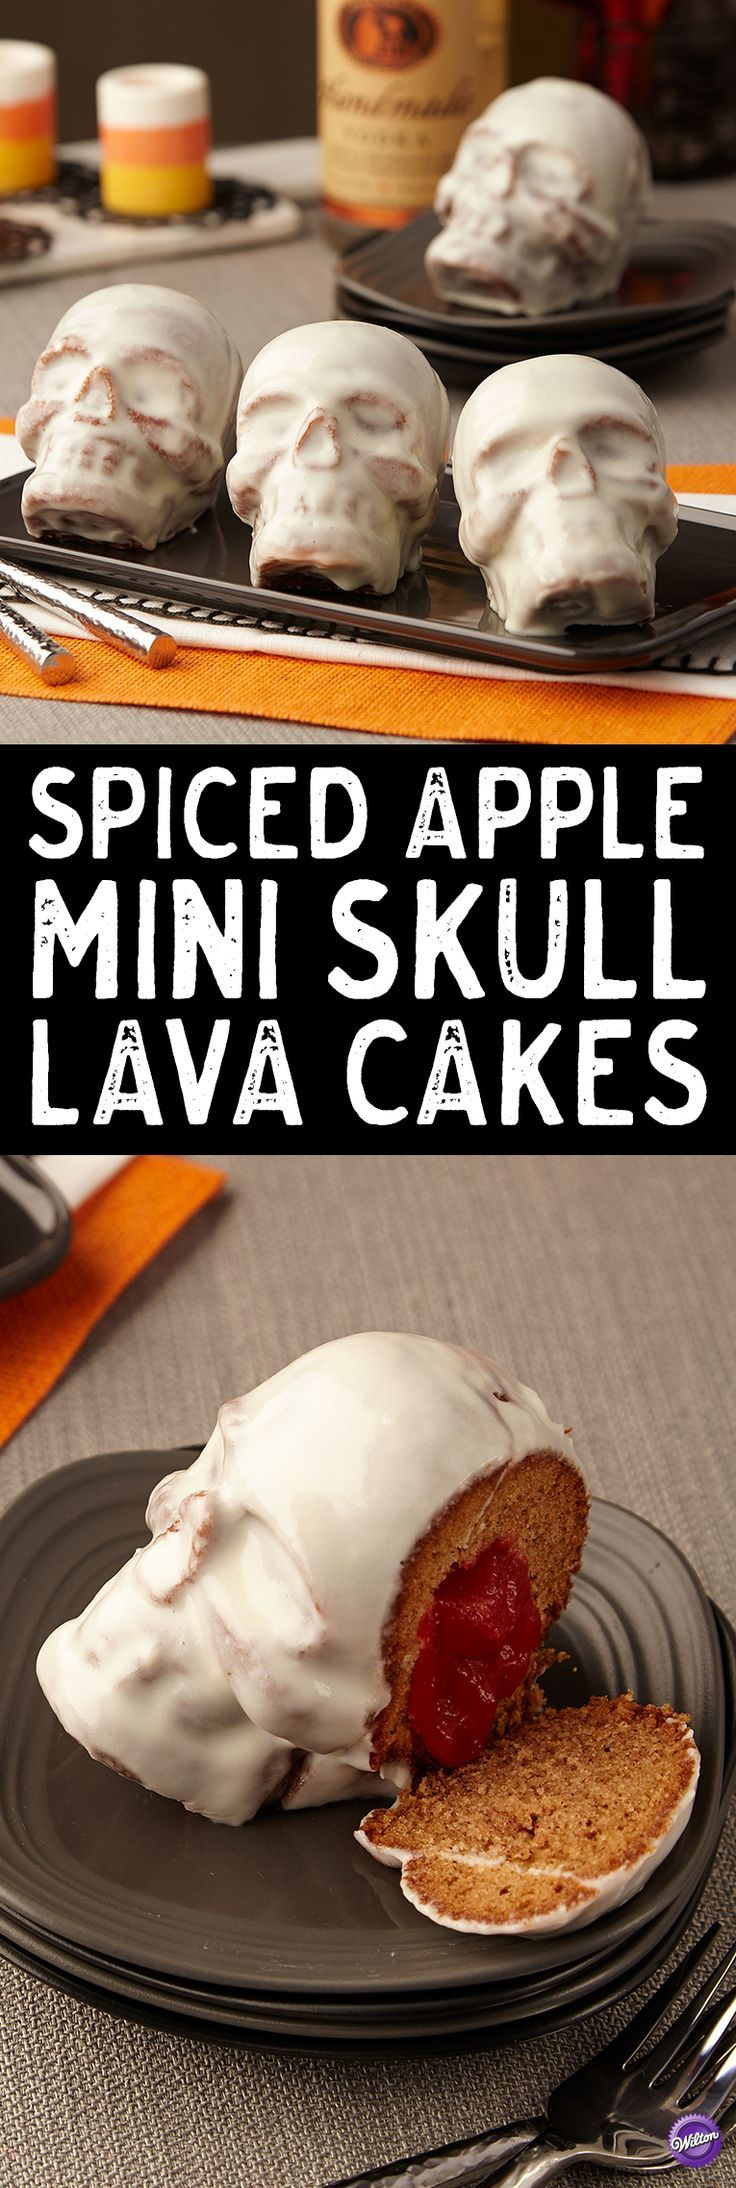 Best 25+ Skull cakes ideas on Pinterest | Gothic wedding cake ...